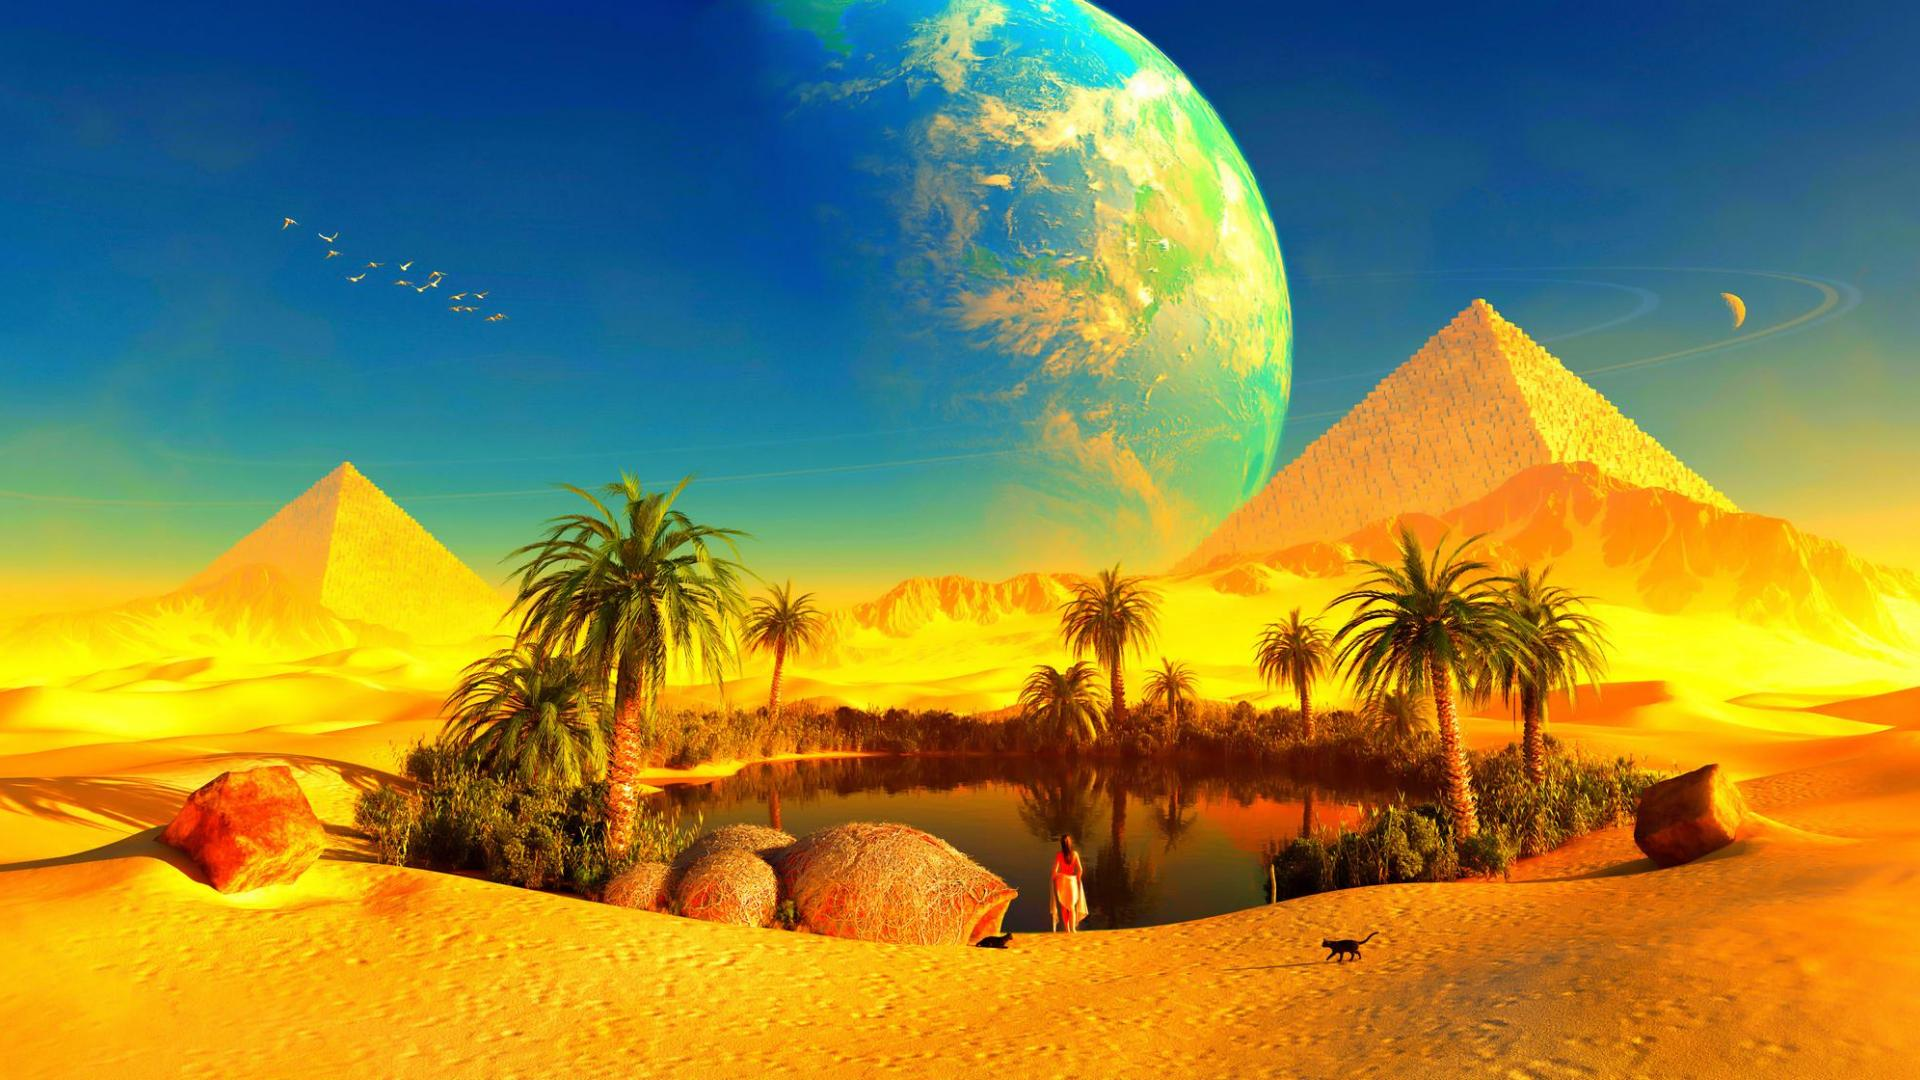 oasis landscape wallpapers archives - photo #14